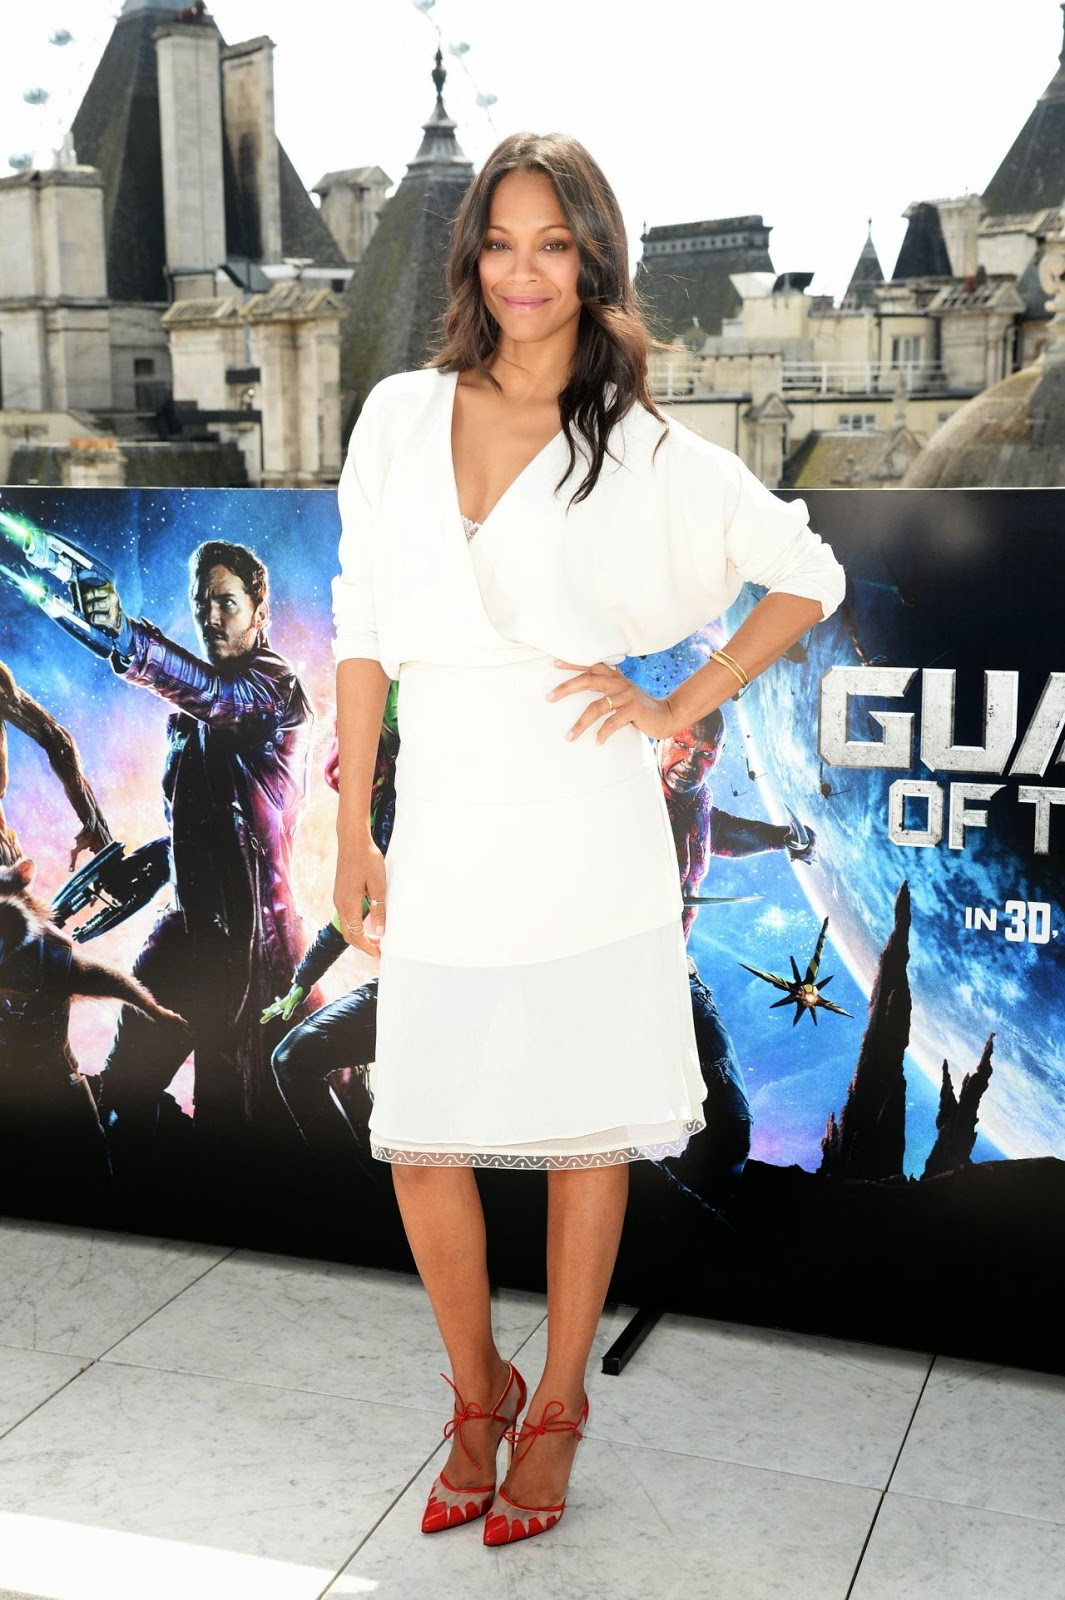 Zoe Saldana in a layered Chloe dress at the 'Guardians of the Galaxy' London photocall